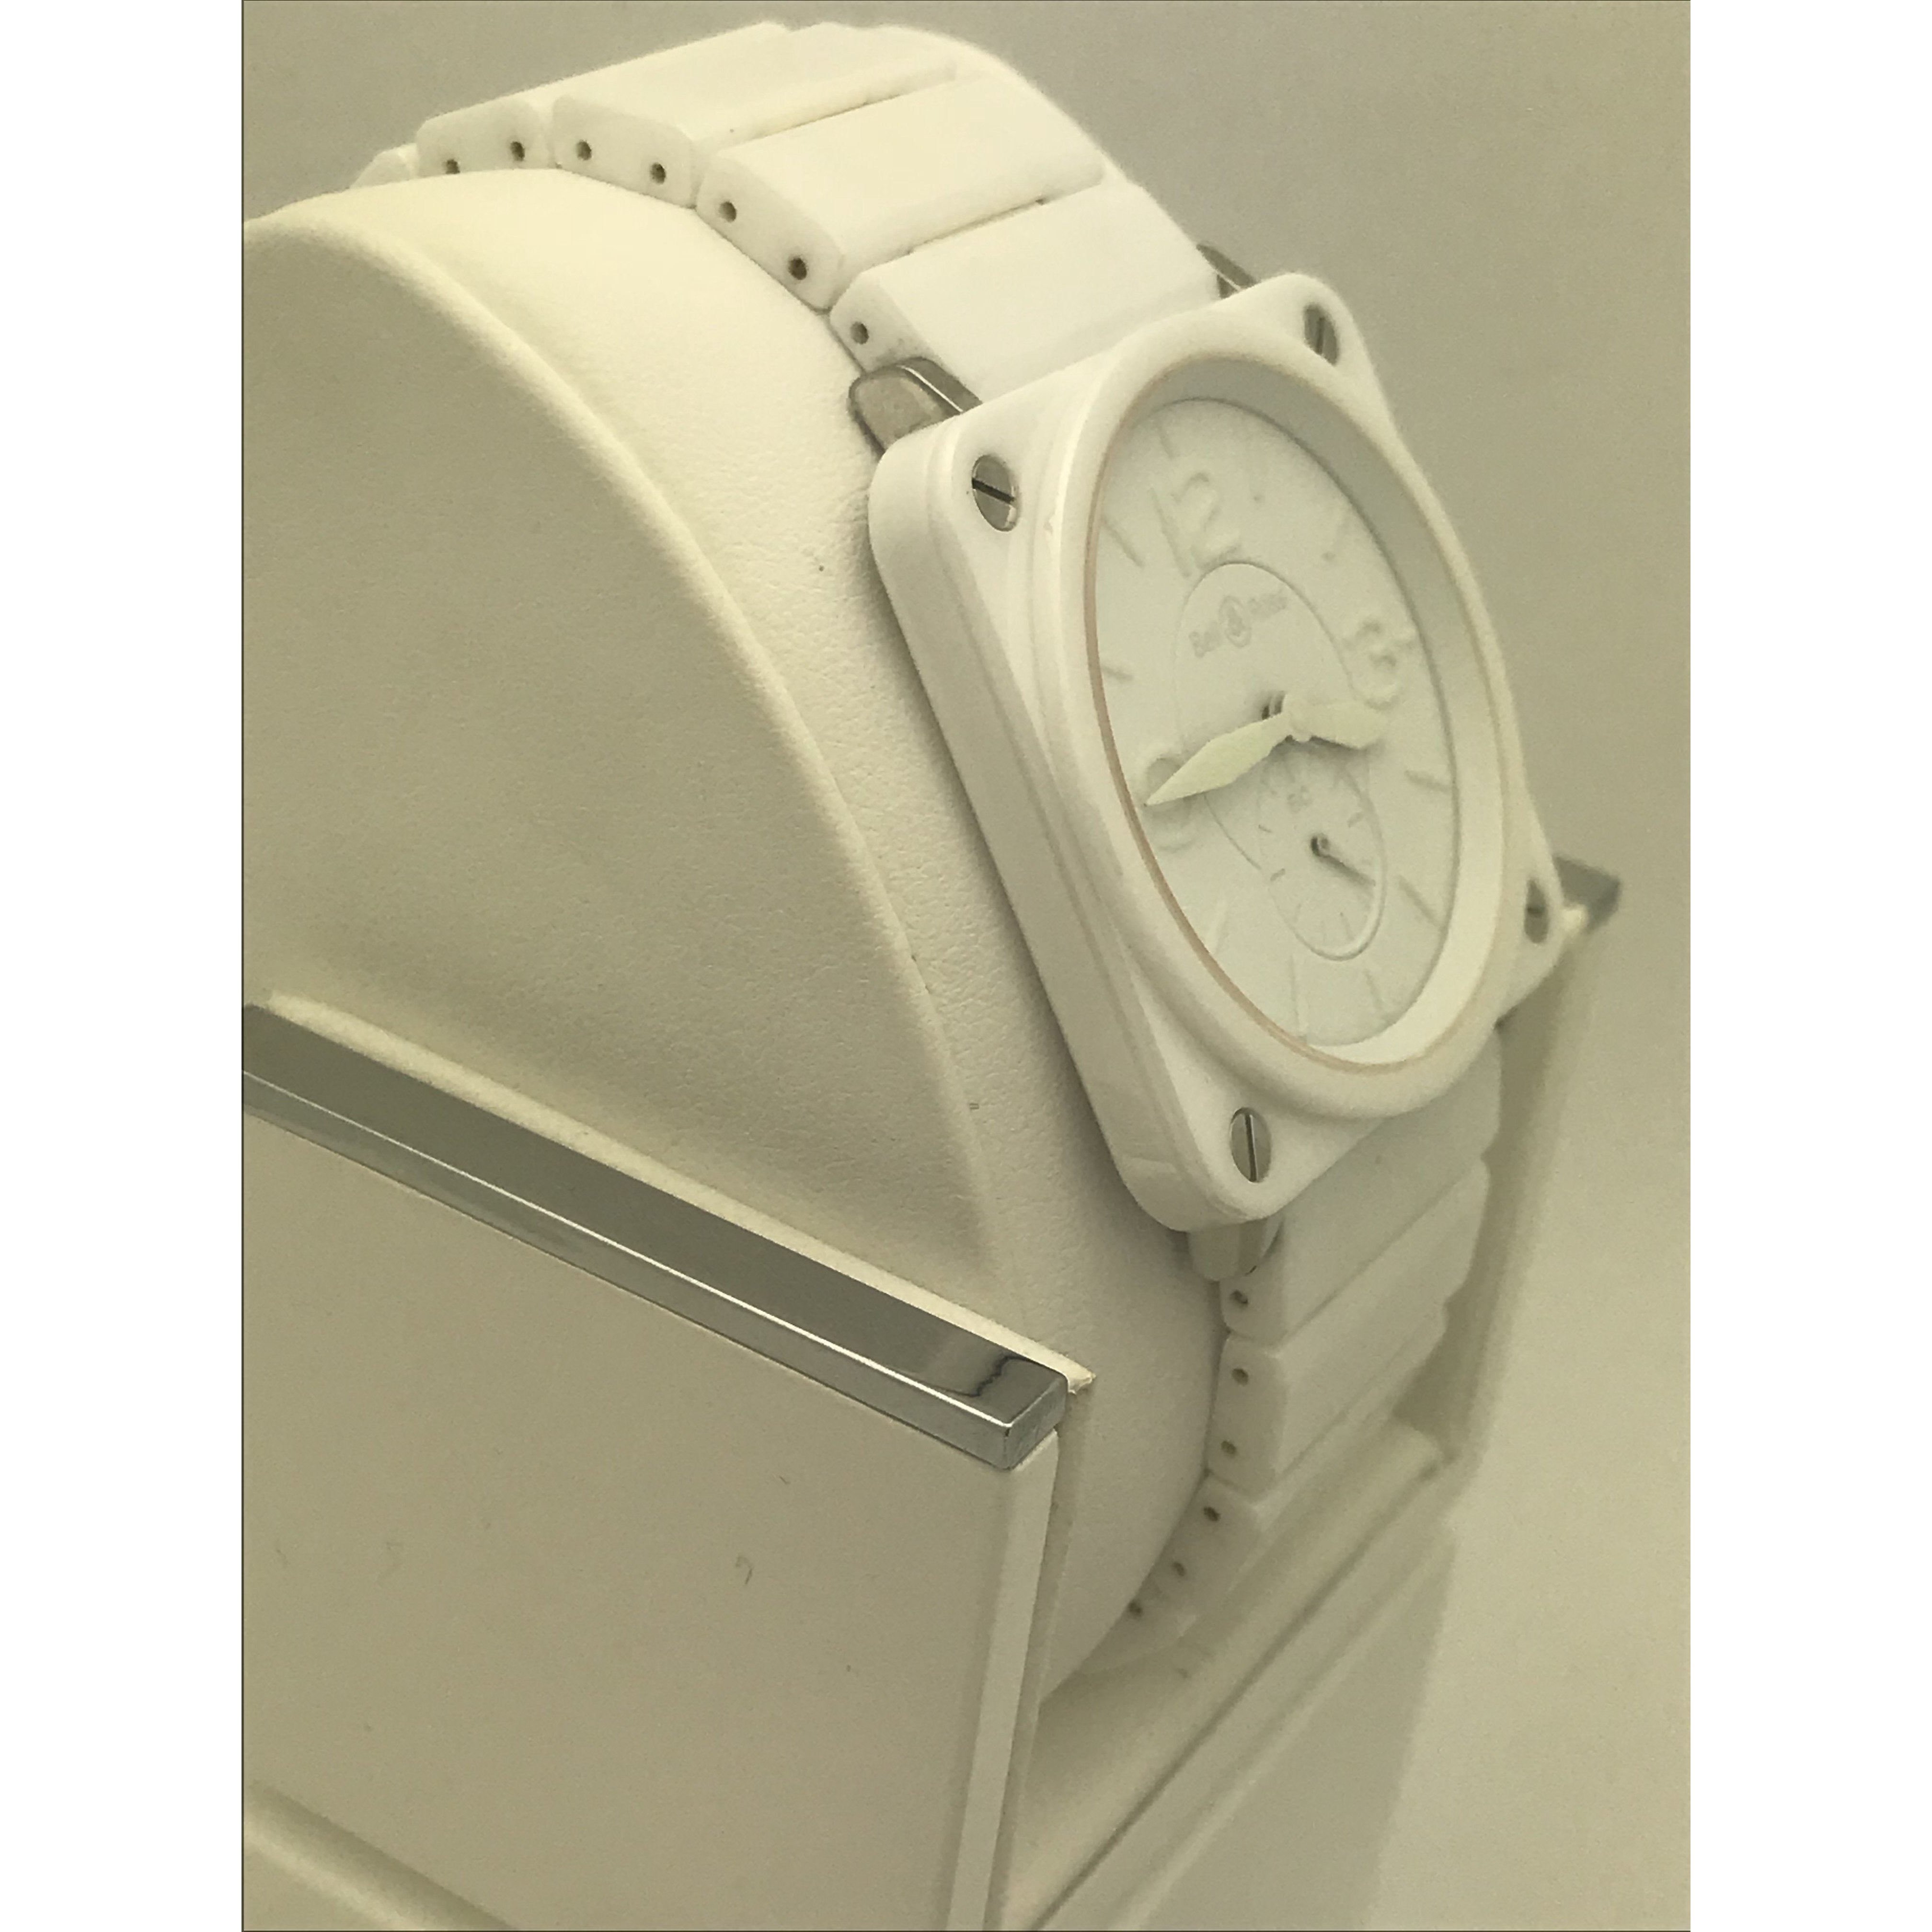 Bell & Ross White Dial White Ceramic Band Watch BRS-98-PWC-00839